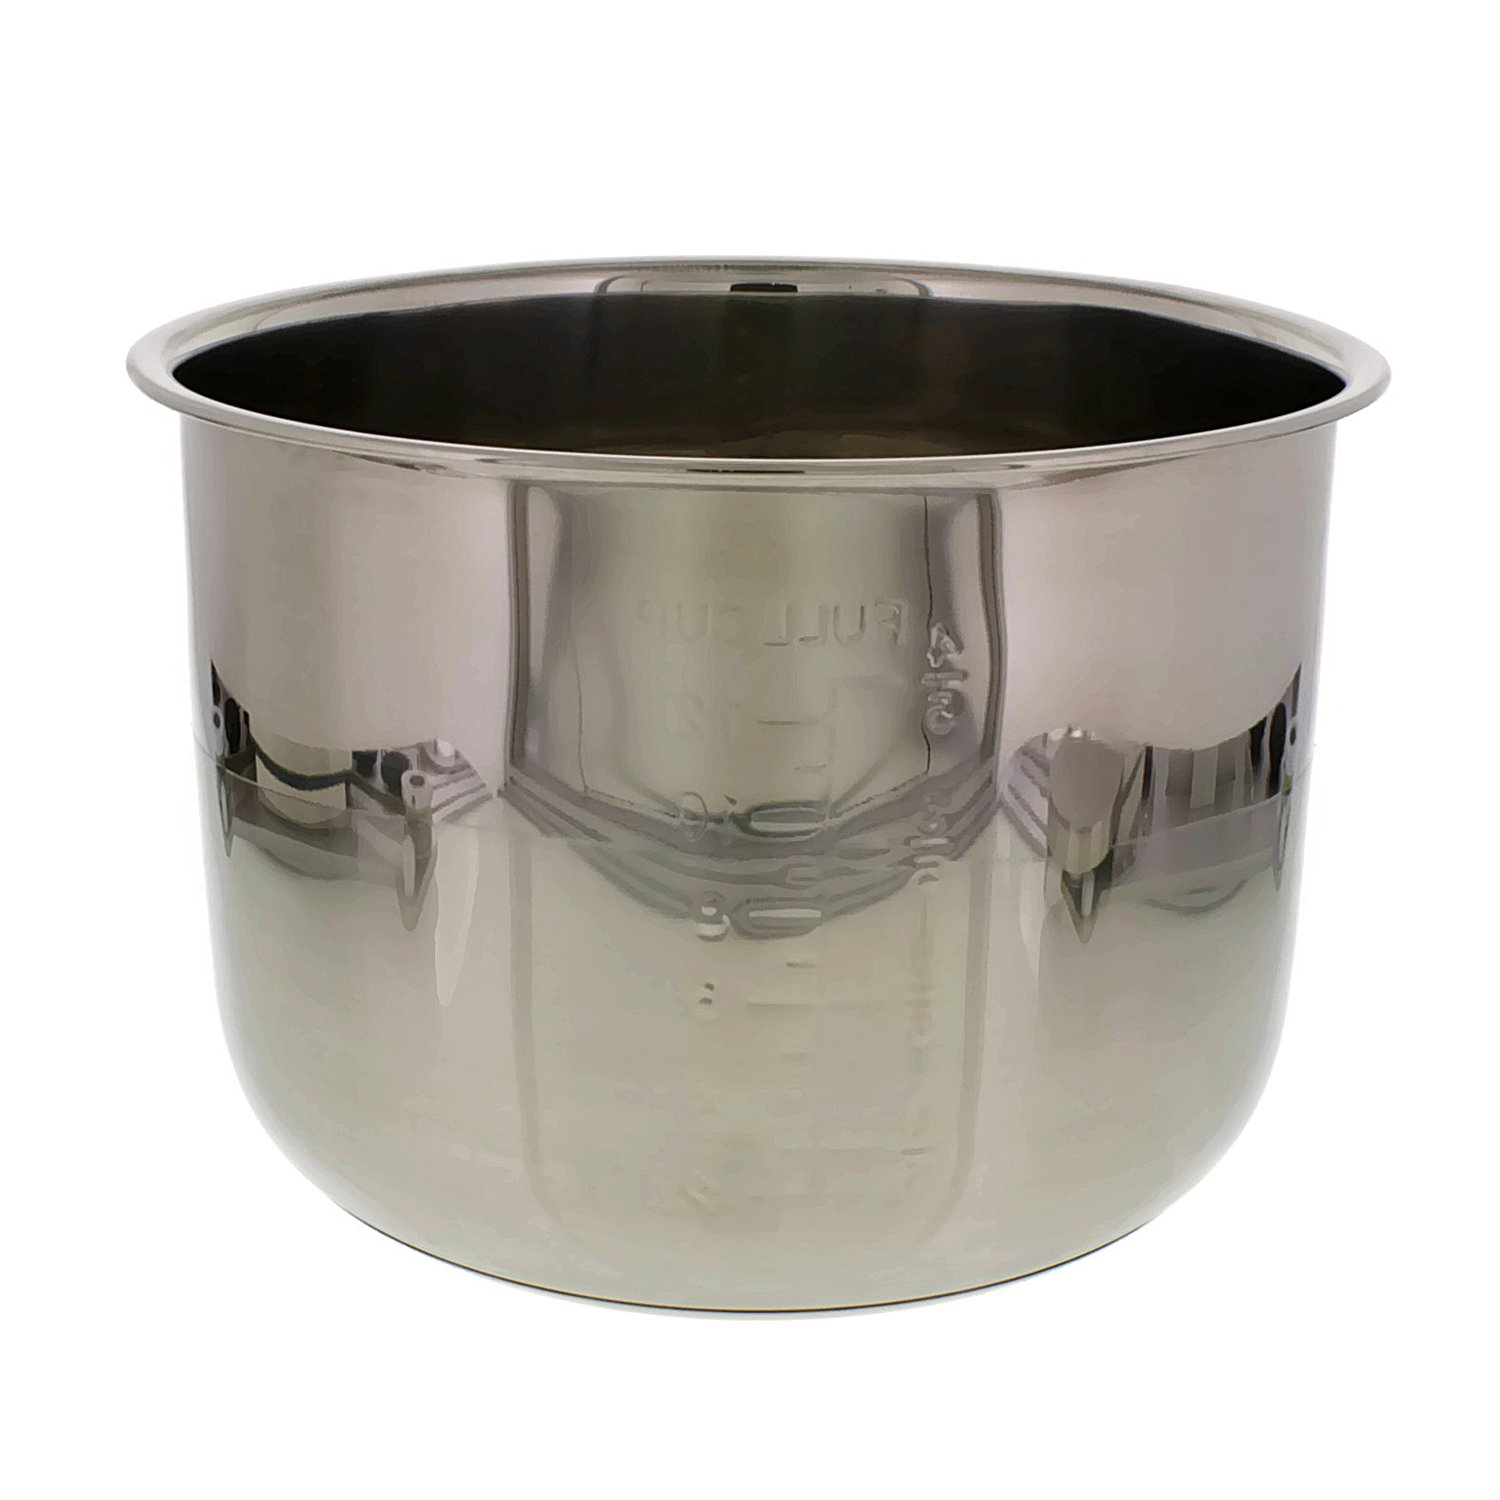 Cheftor 6 Quart Stainless Steel Removable Electric Pressure Cooker Cooking Pot Insert by CHEFTOR